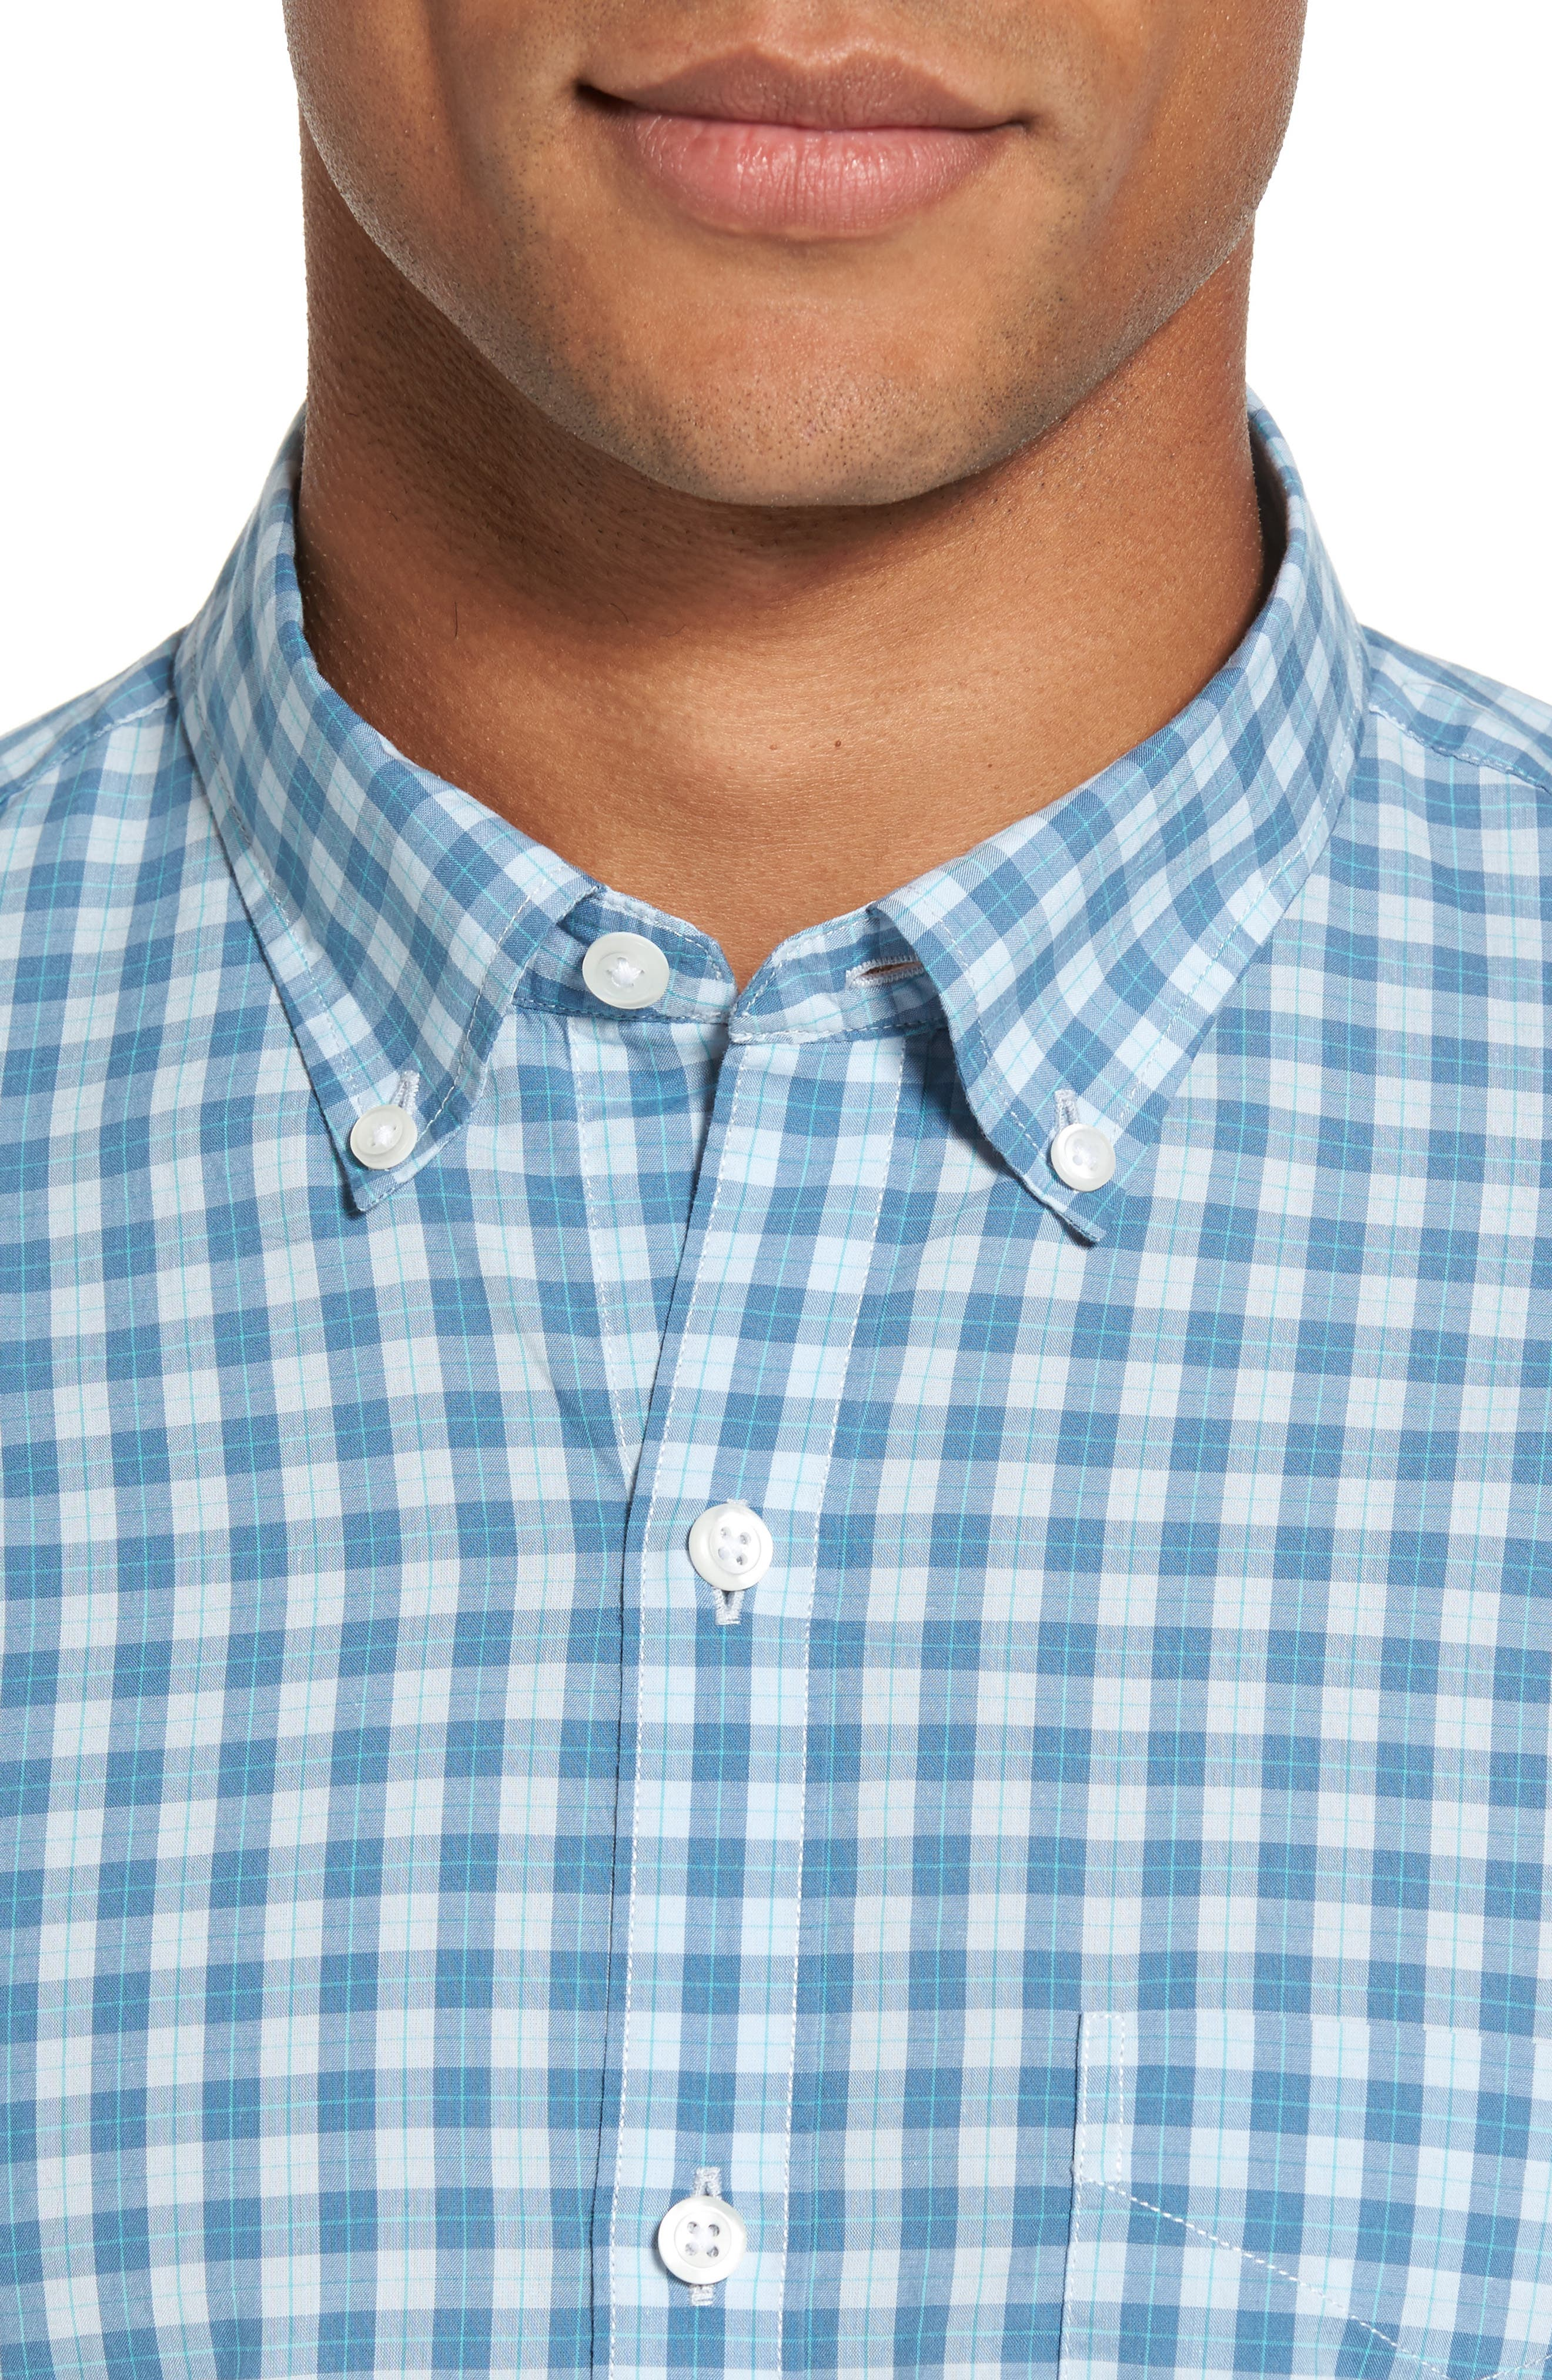 Summerweight Slim Fit Check Sport Shirt,                             Alternate thumbnail 3, color,                             Airway Check